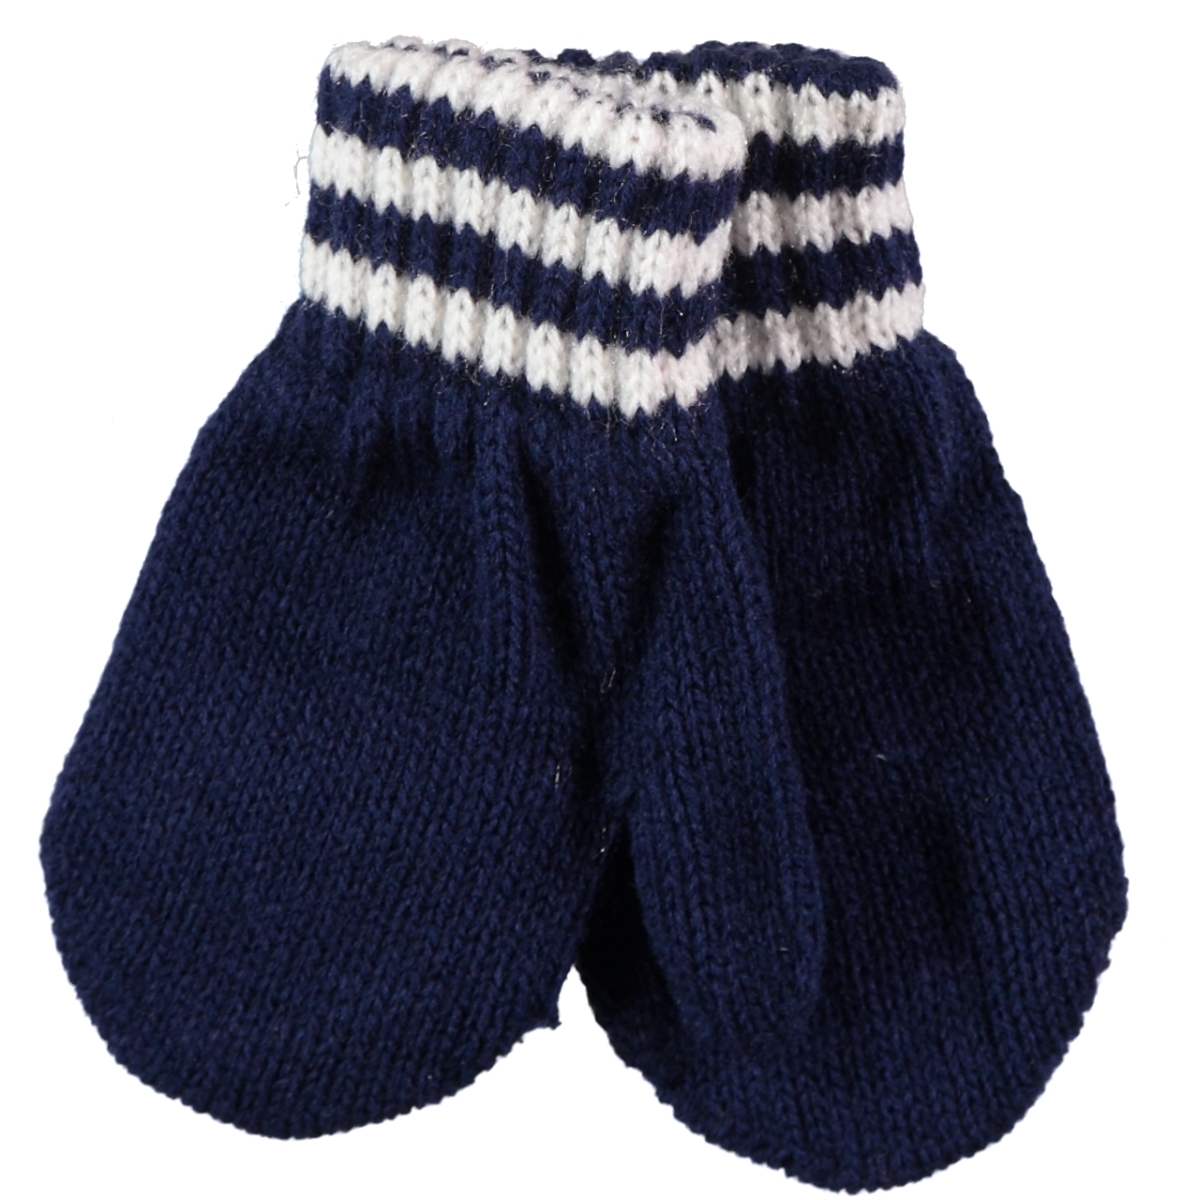 Suve 0-24 Months Baby Gloves Navy Blue